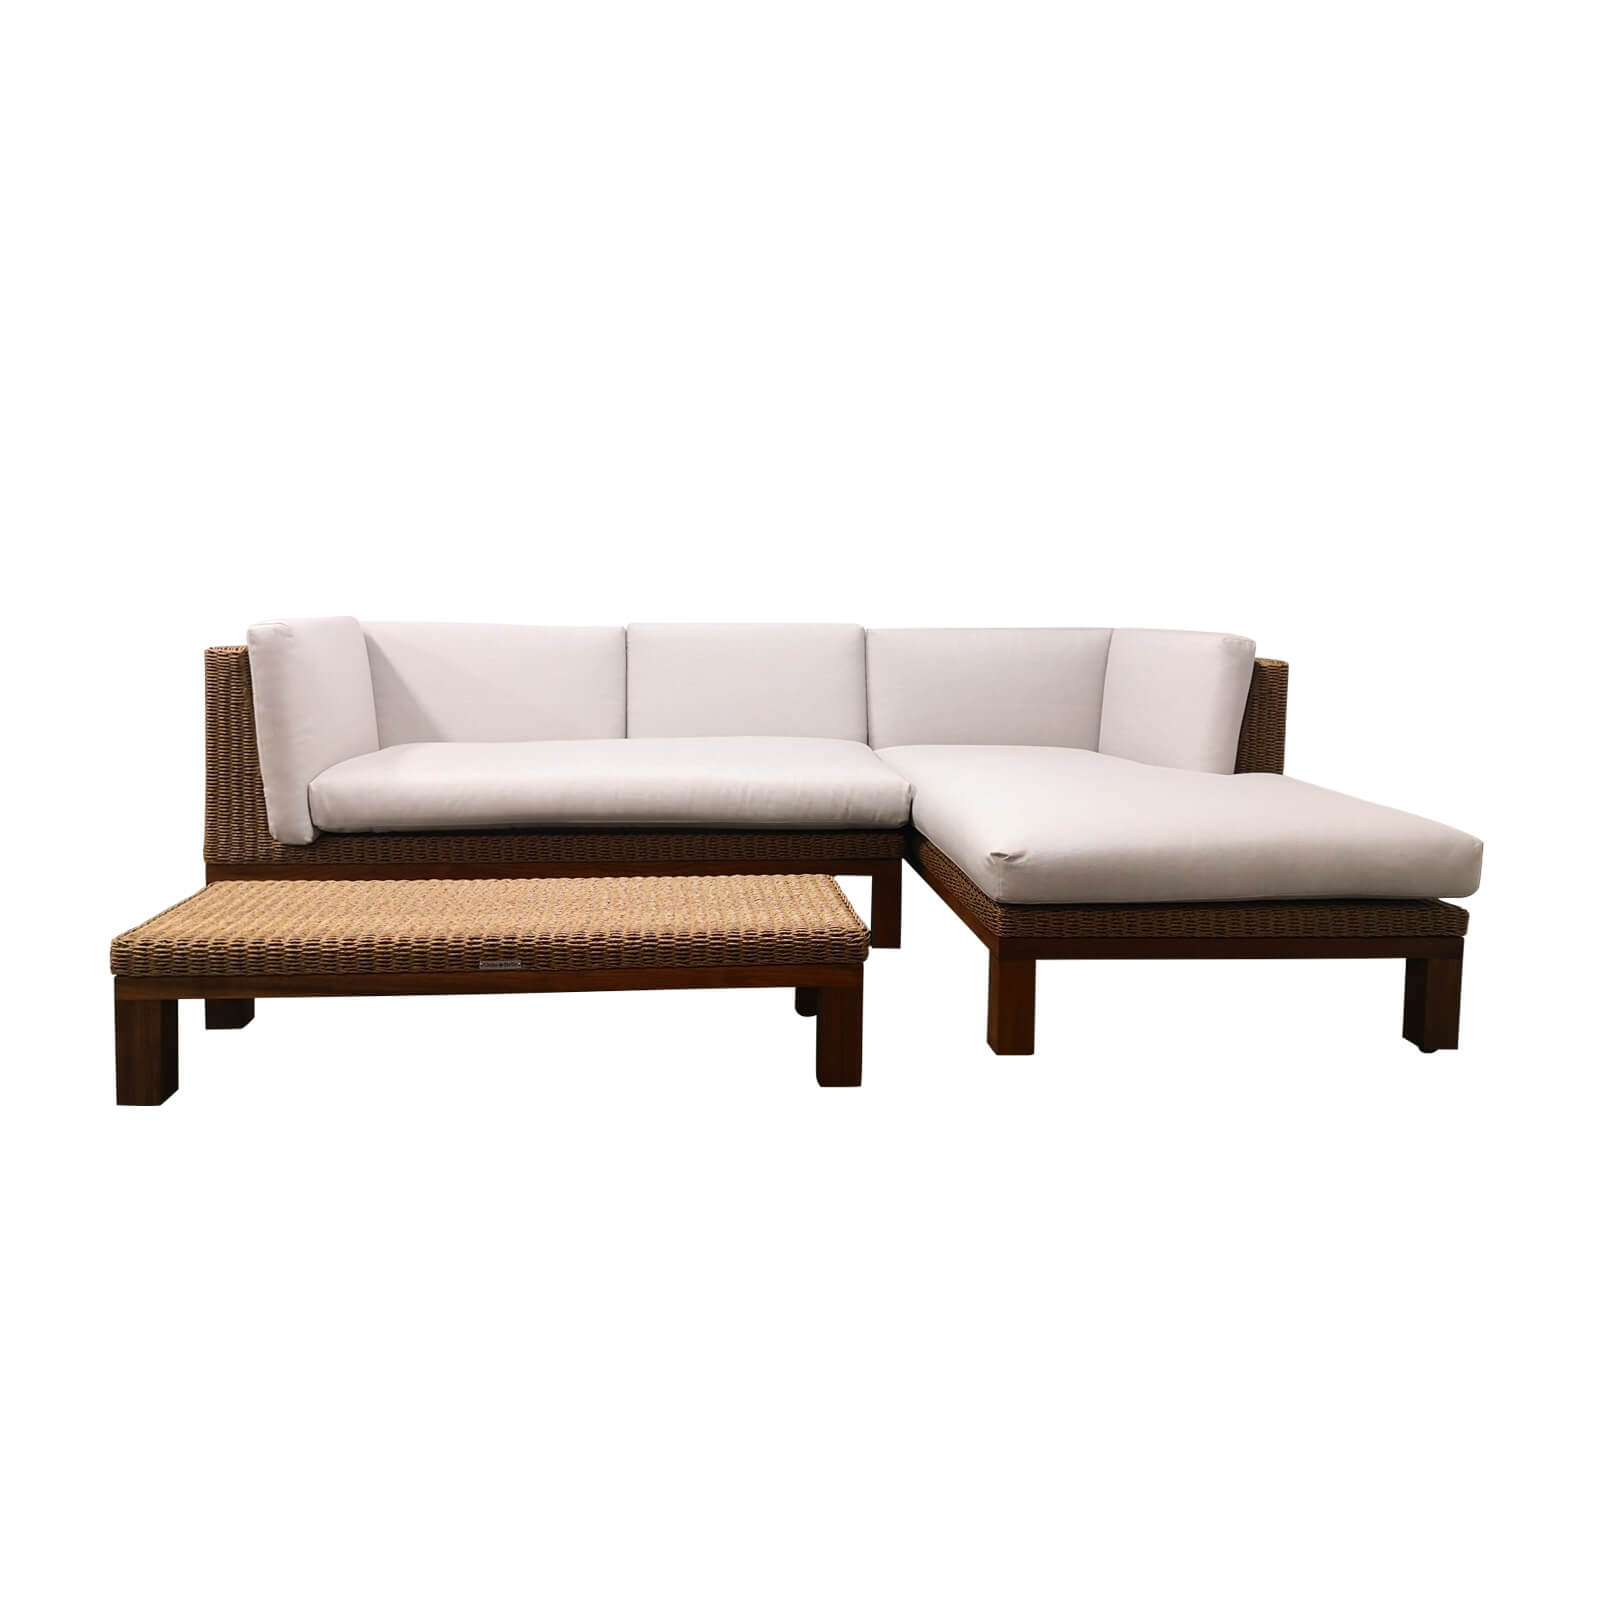 Two Design Lovers outdoor furniture teak and wicker sofa set with coffee table Osier Belle Joli